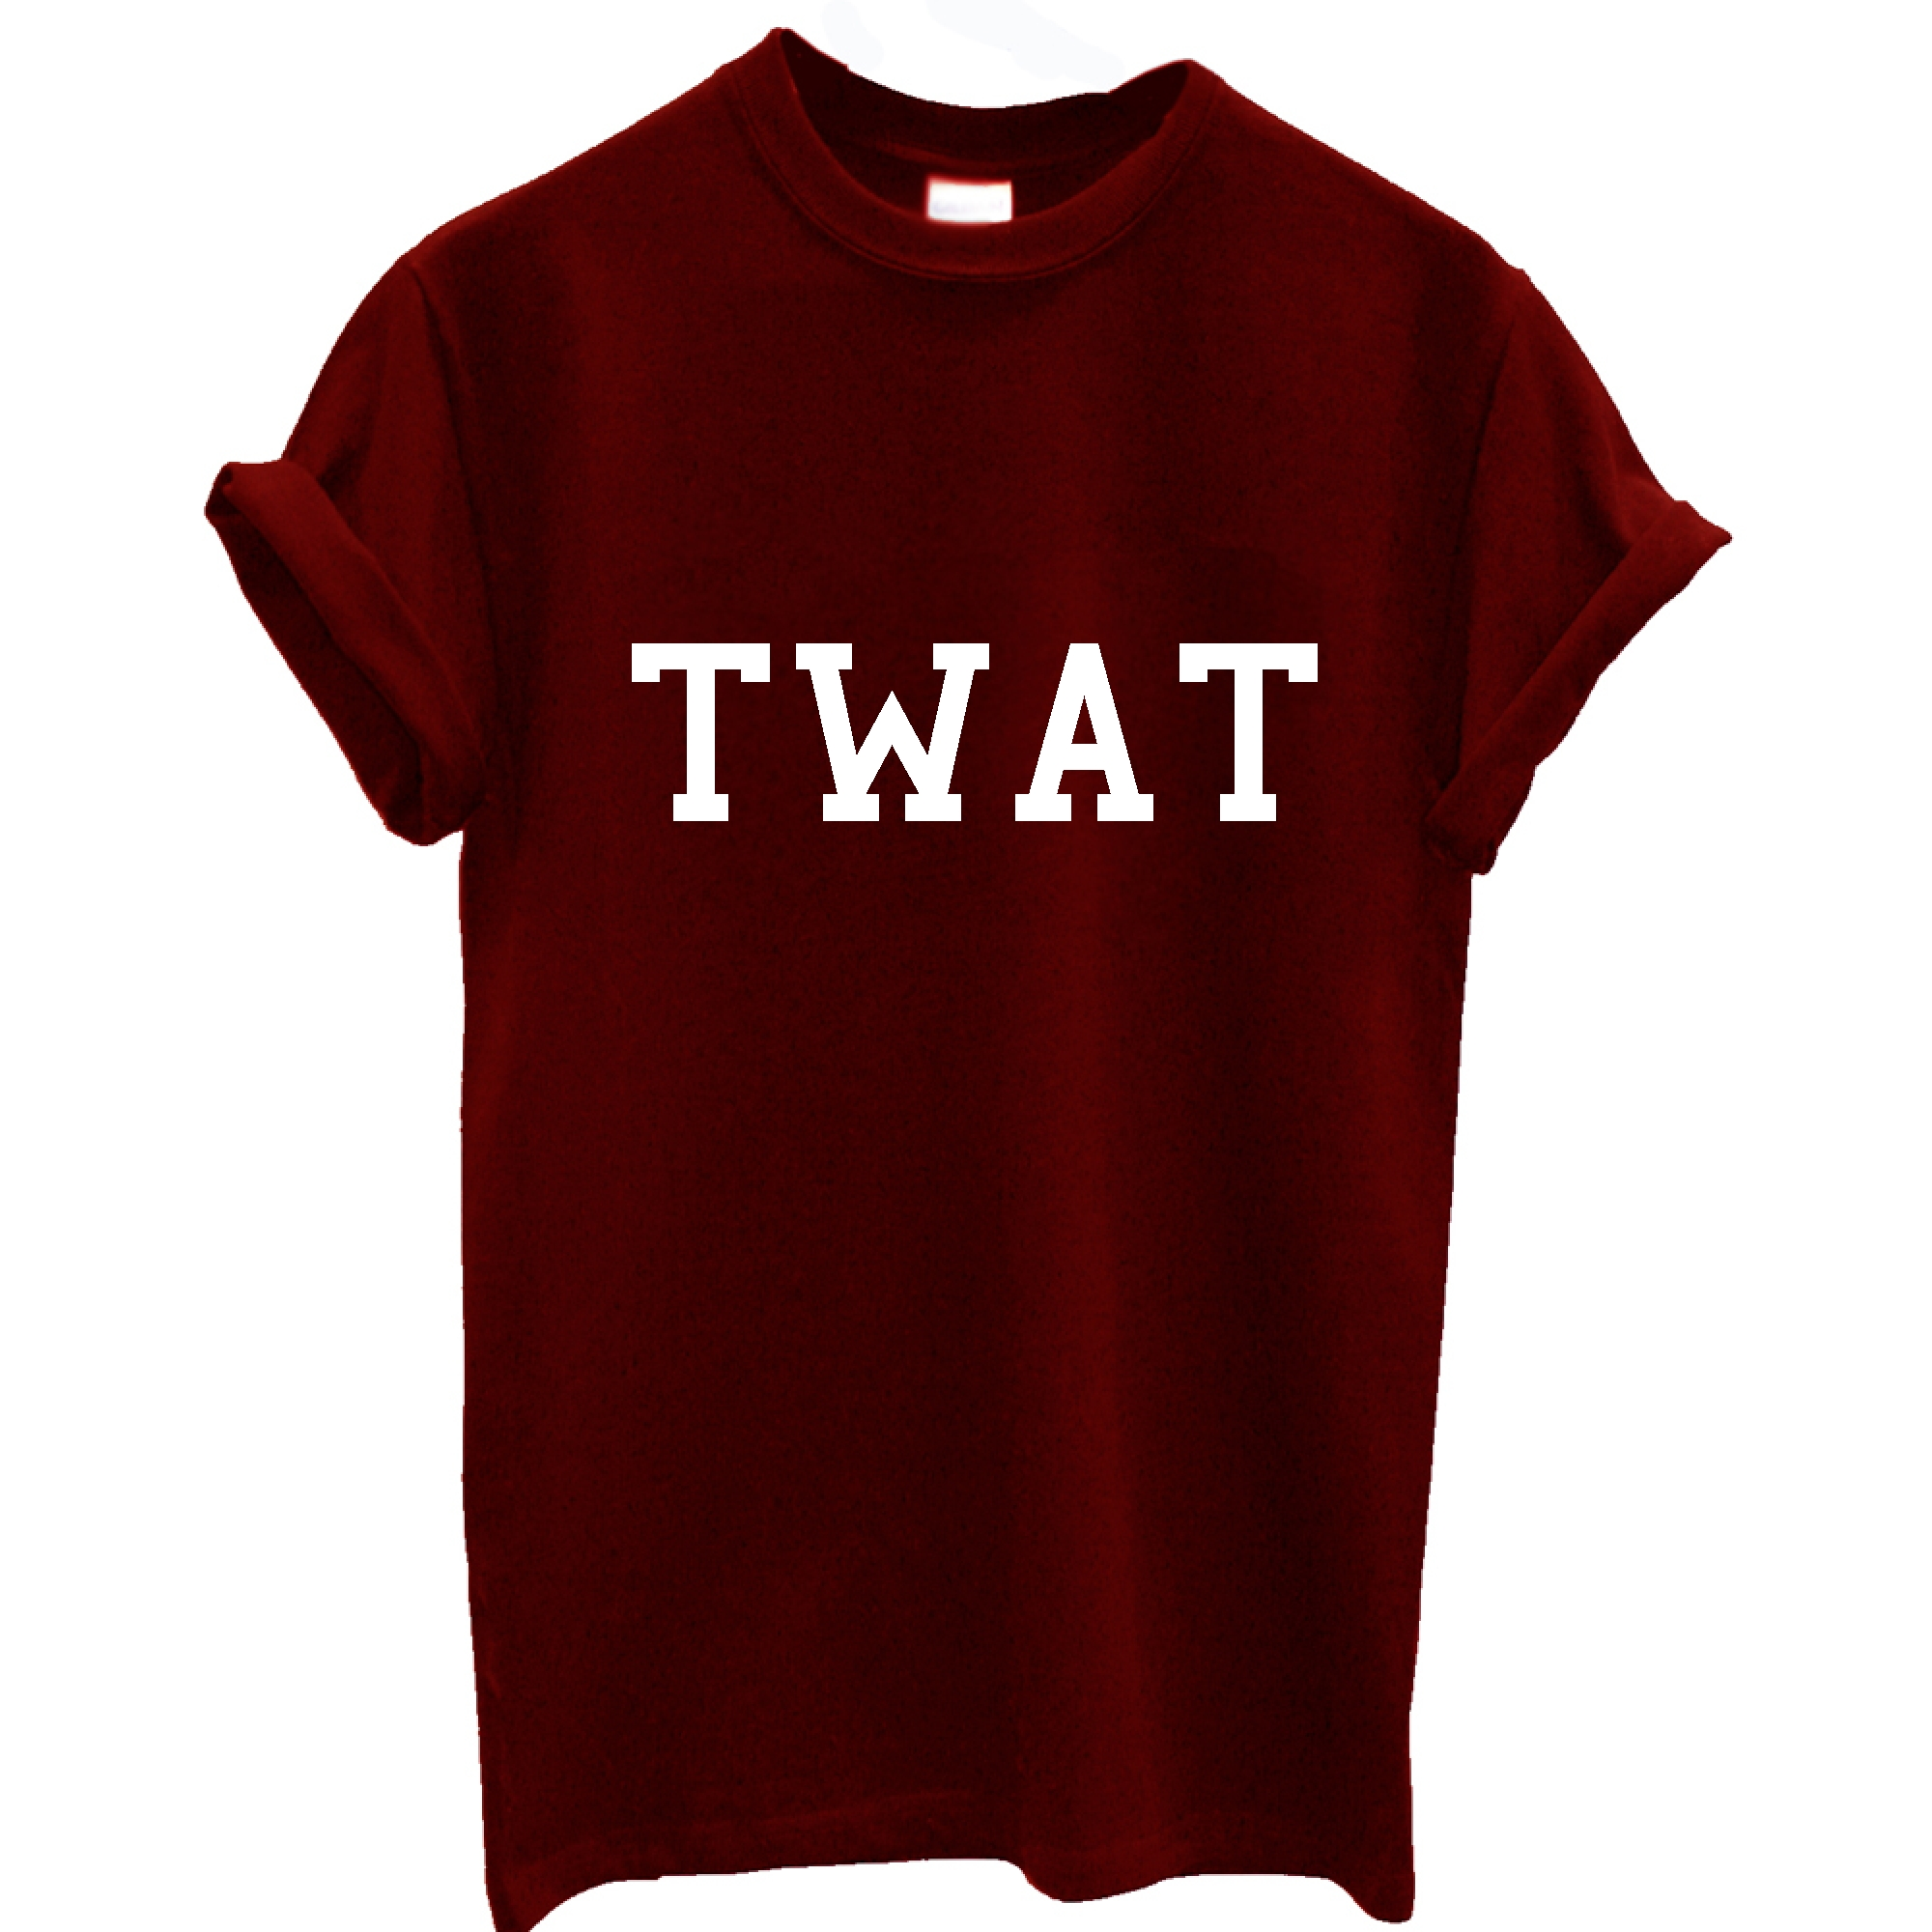 TWAT t shirt top wasted youth hipster SWAG indie geek nerd shop baggy dope FUNNY | eBay